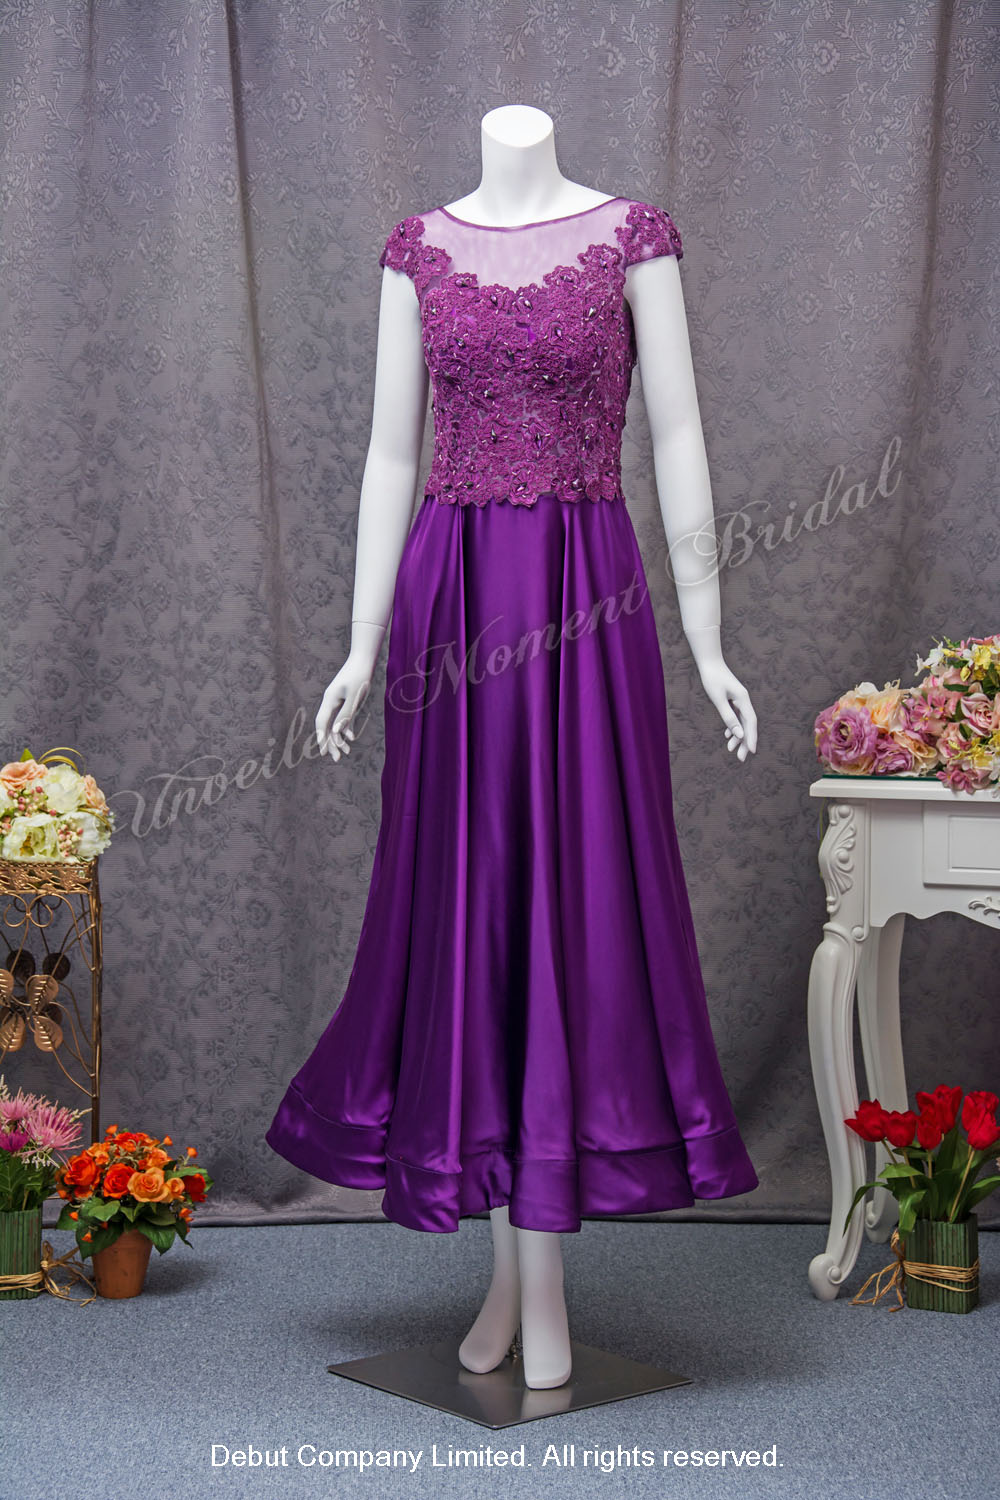 Purple Mother-of-Bride Party Dress with lace embellishment 紫色, 蕾絲釘珠, 媽咪晚裝裙